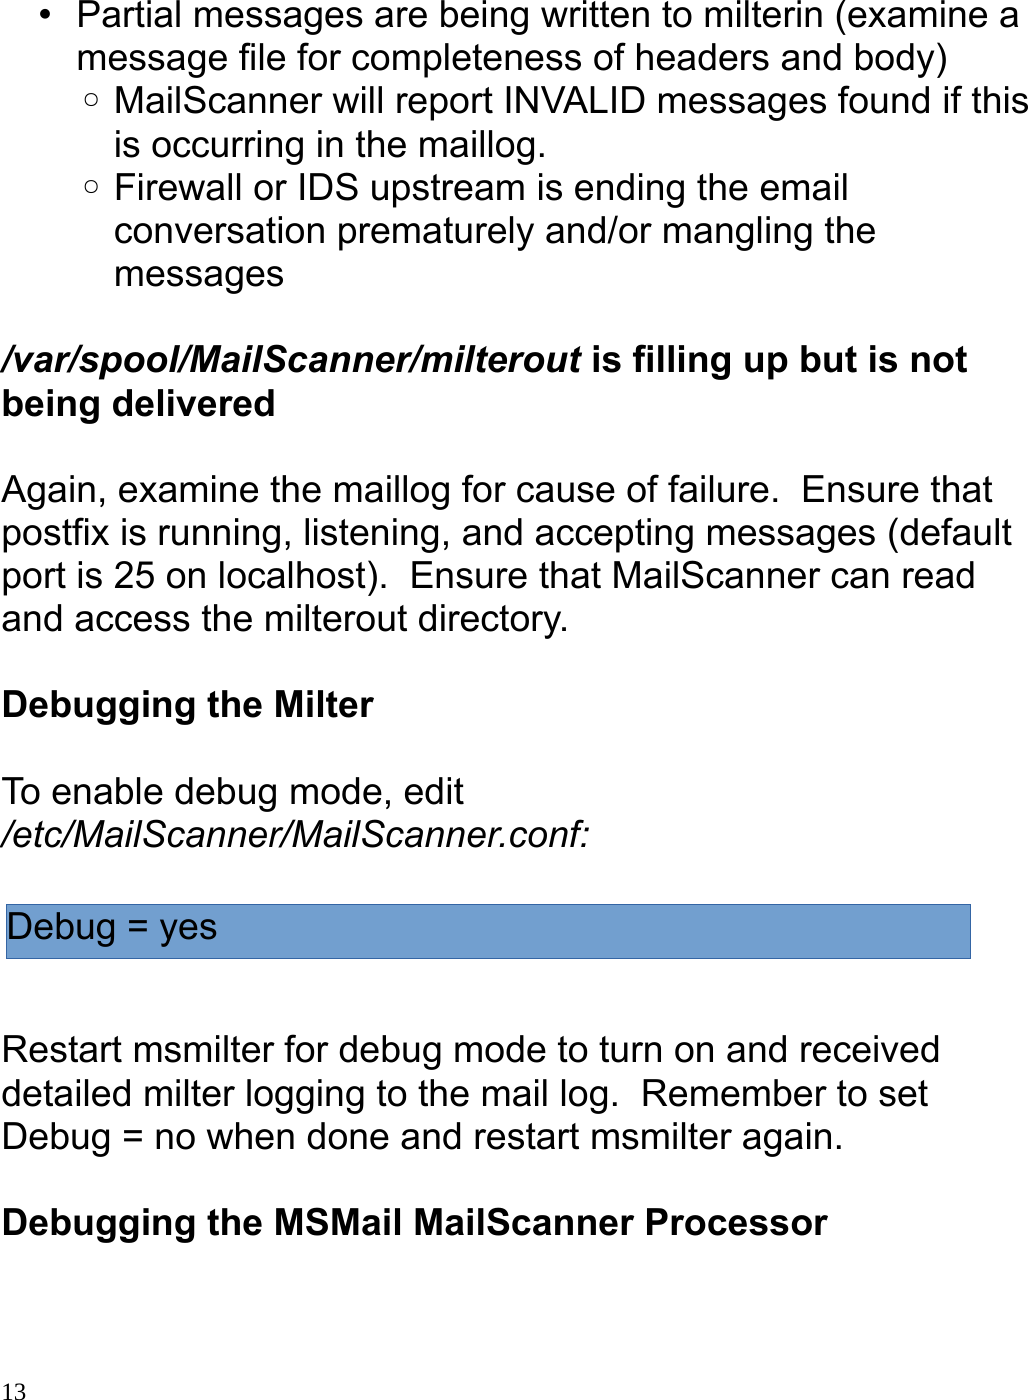 Mail Scanner Milter Guide